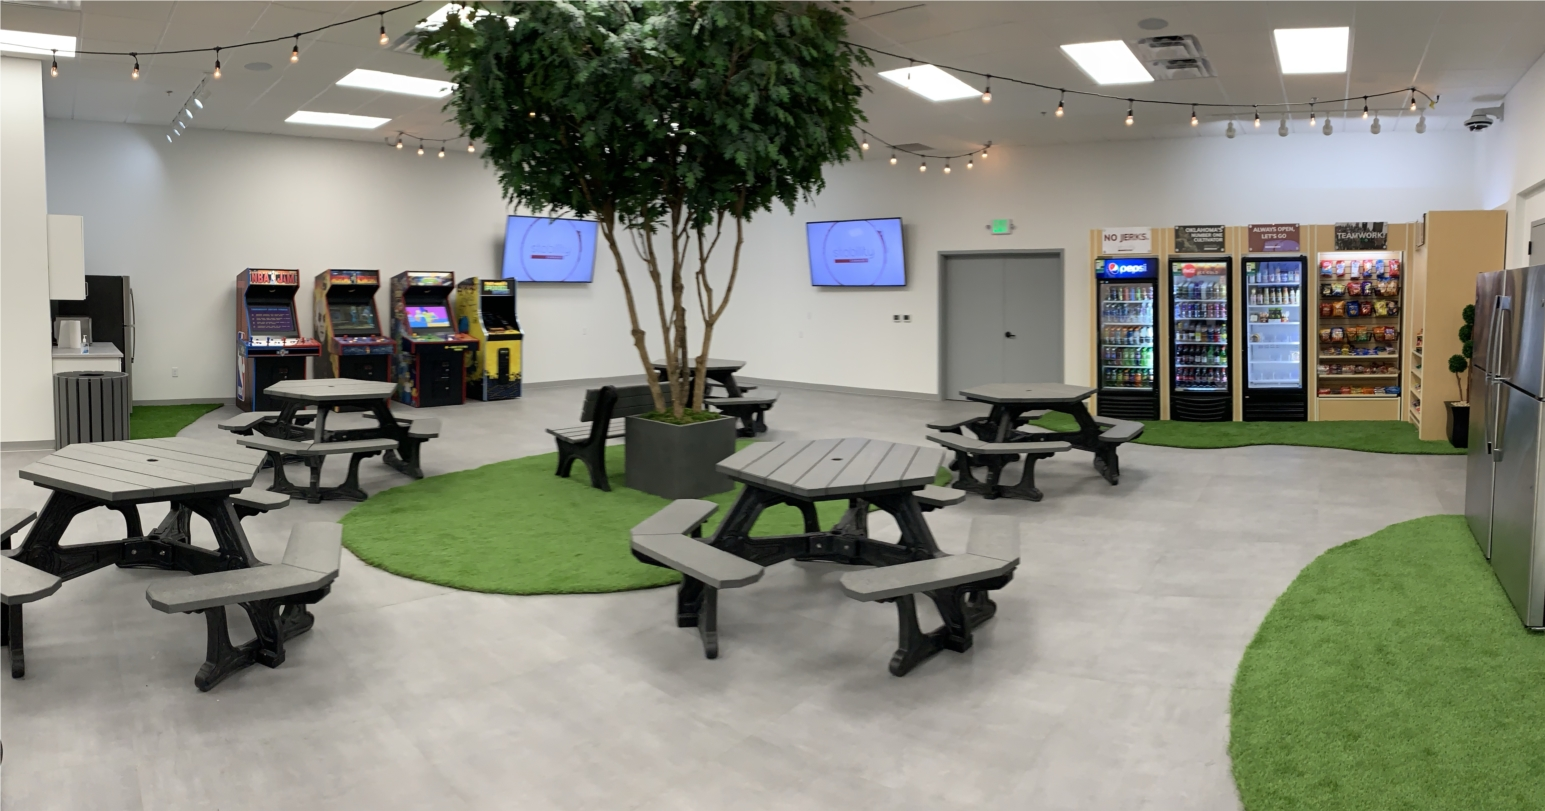 """""""The Park"""".  Stability Cannabis employee break room features a free arcade, nearly free food and drinks, and a park like atmosphere."""